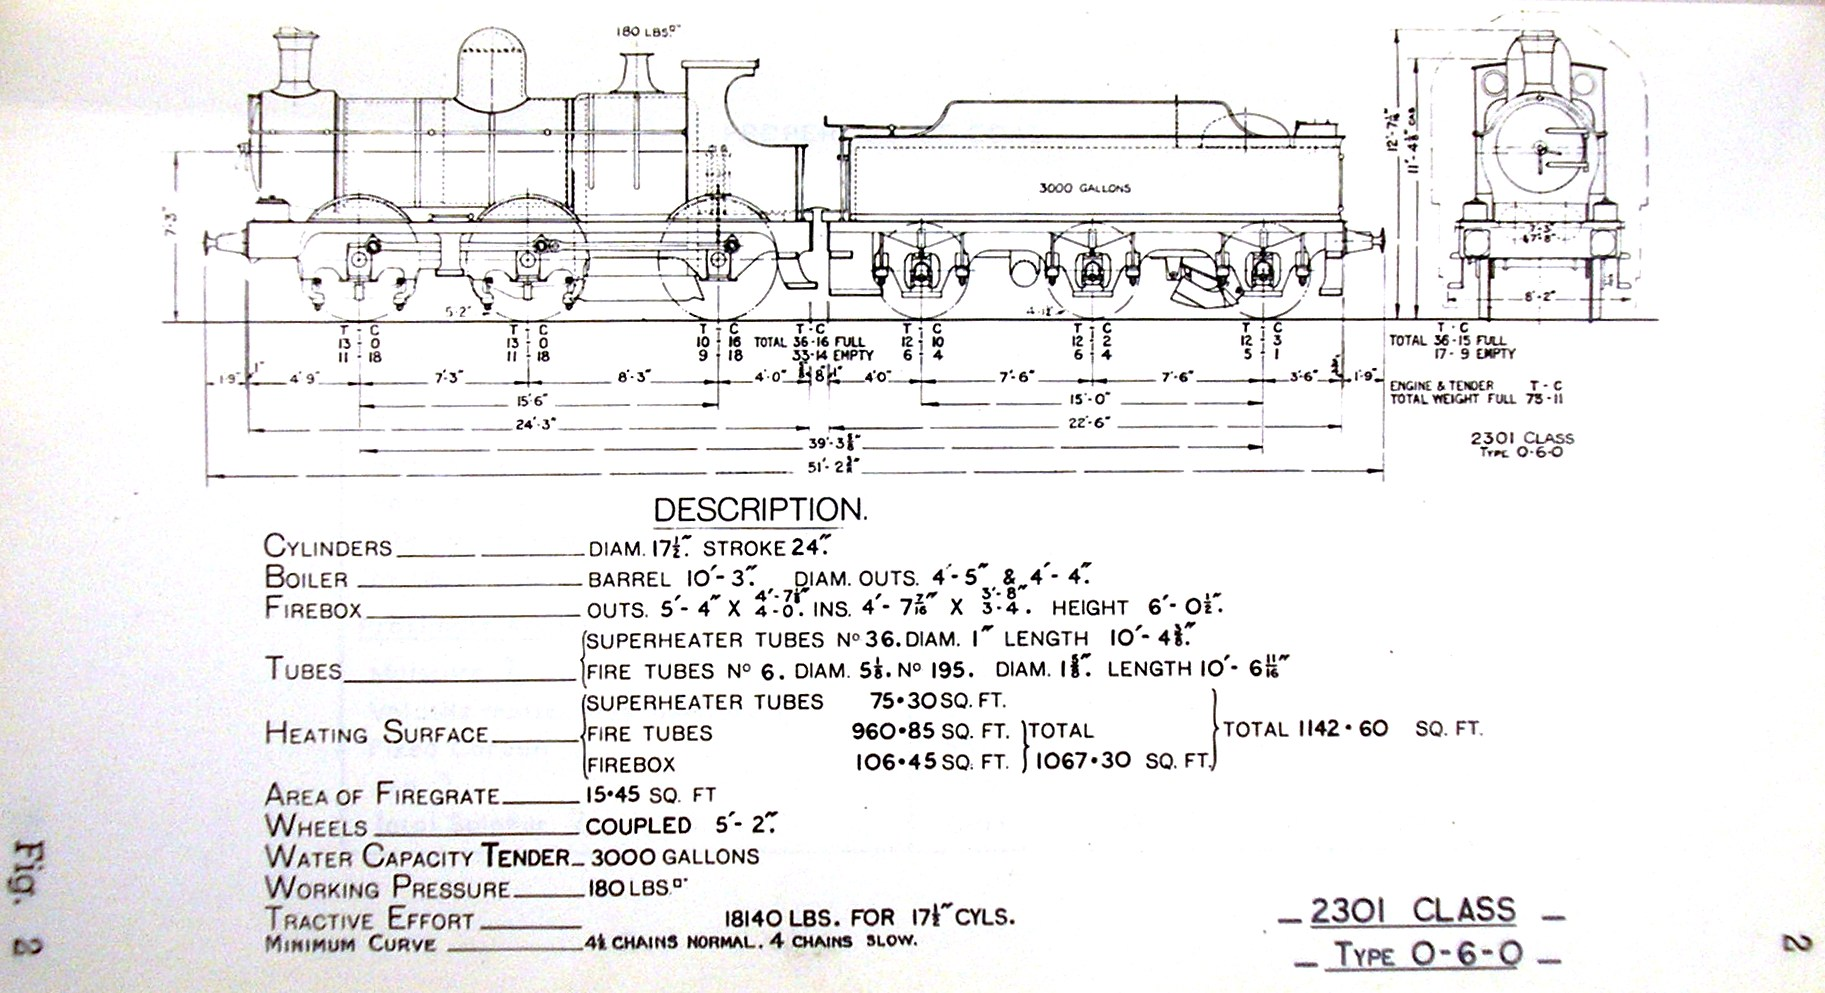 Index Of Bersano English Anglais Koopmans Collection 2mt T03 I5 Engine Diagram F02